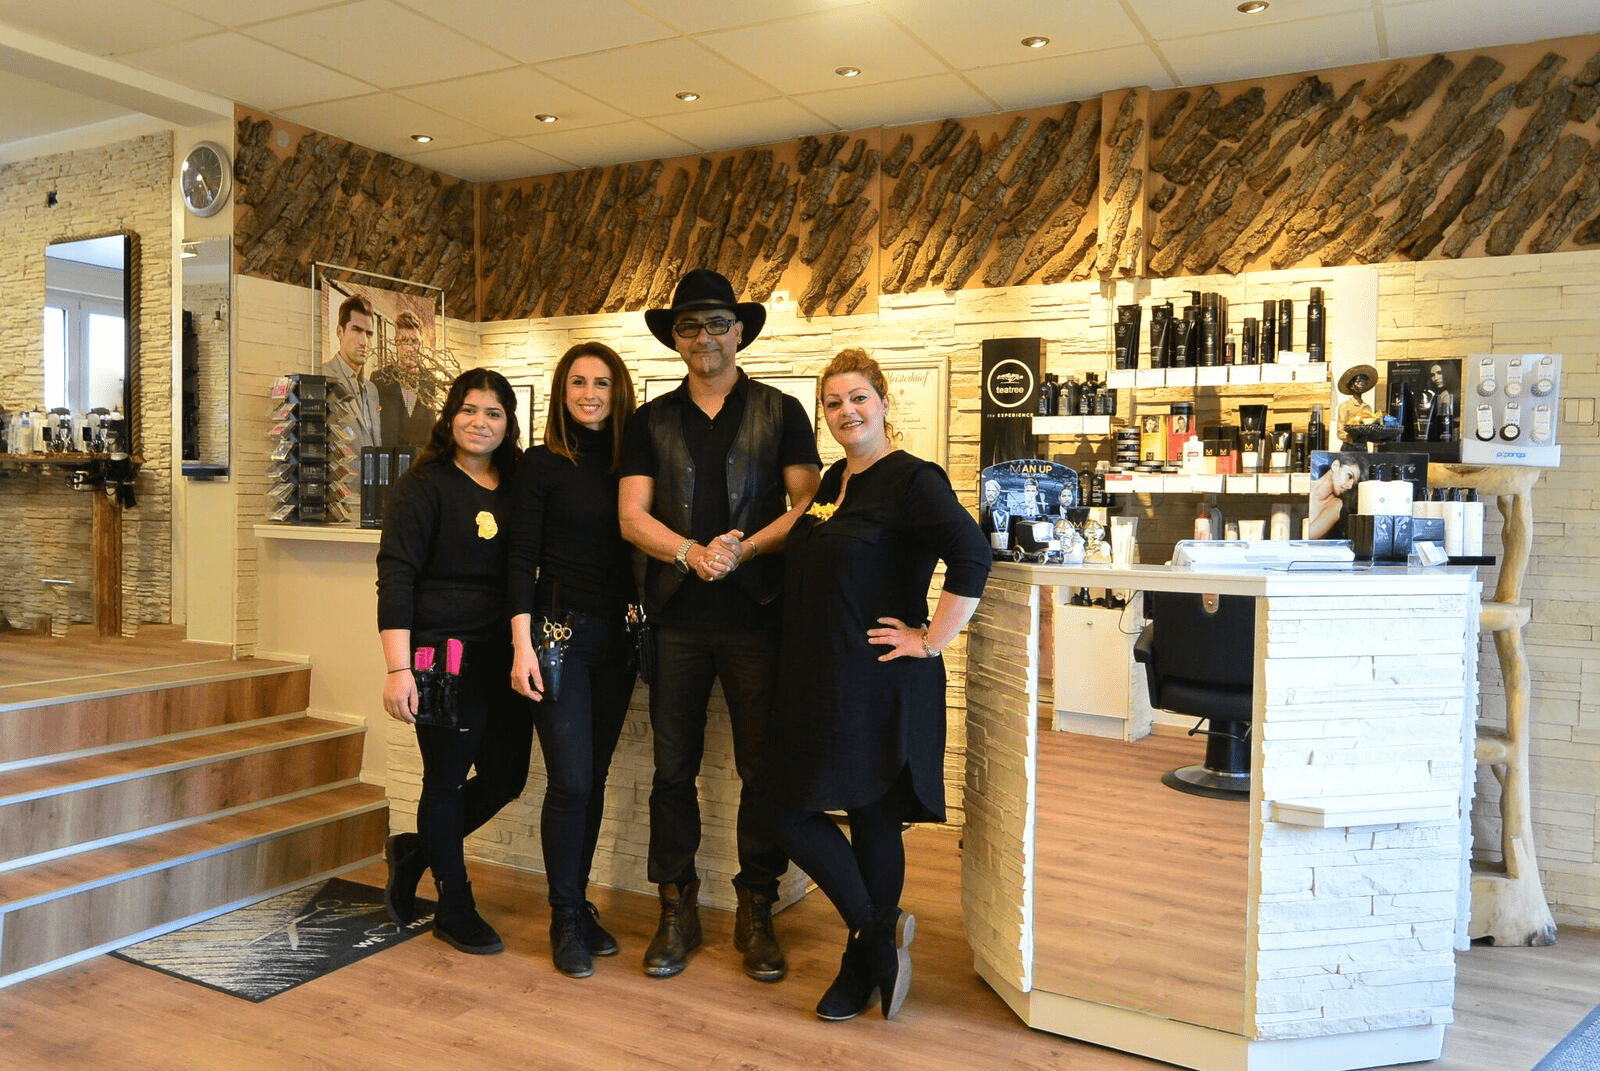 Friseur Hamburg – i change your style